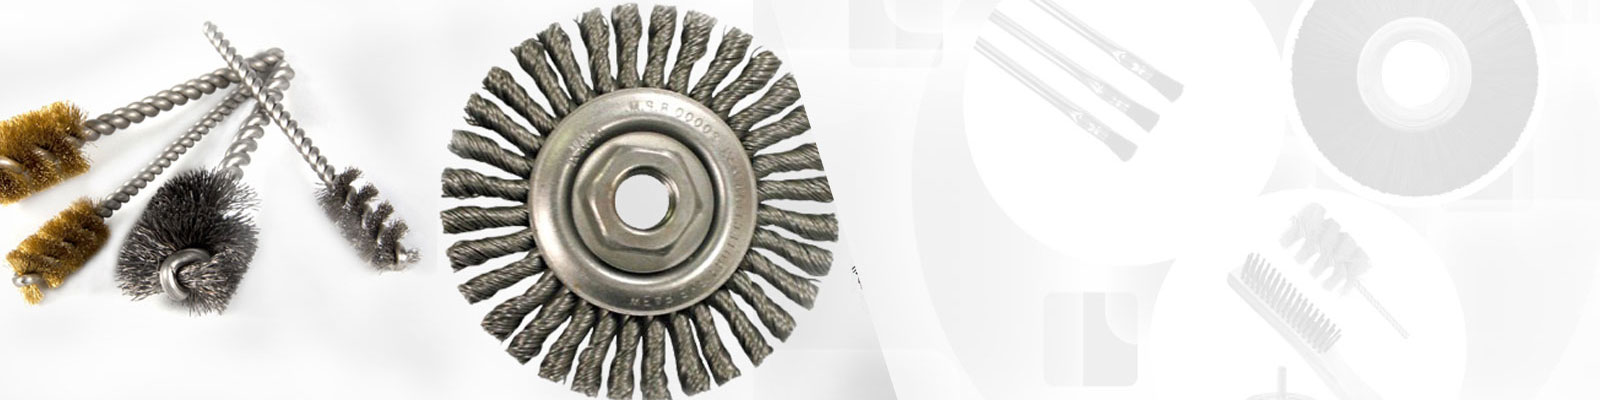 RADIAL END BRUSHES STAINLESS STEEL